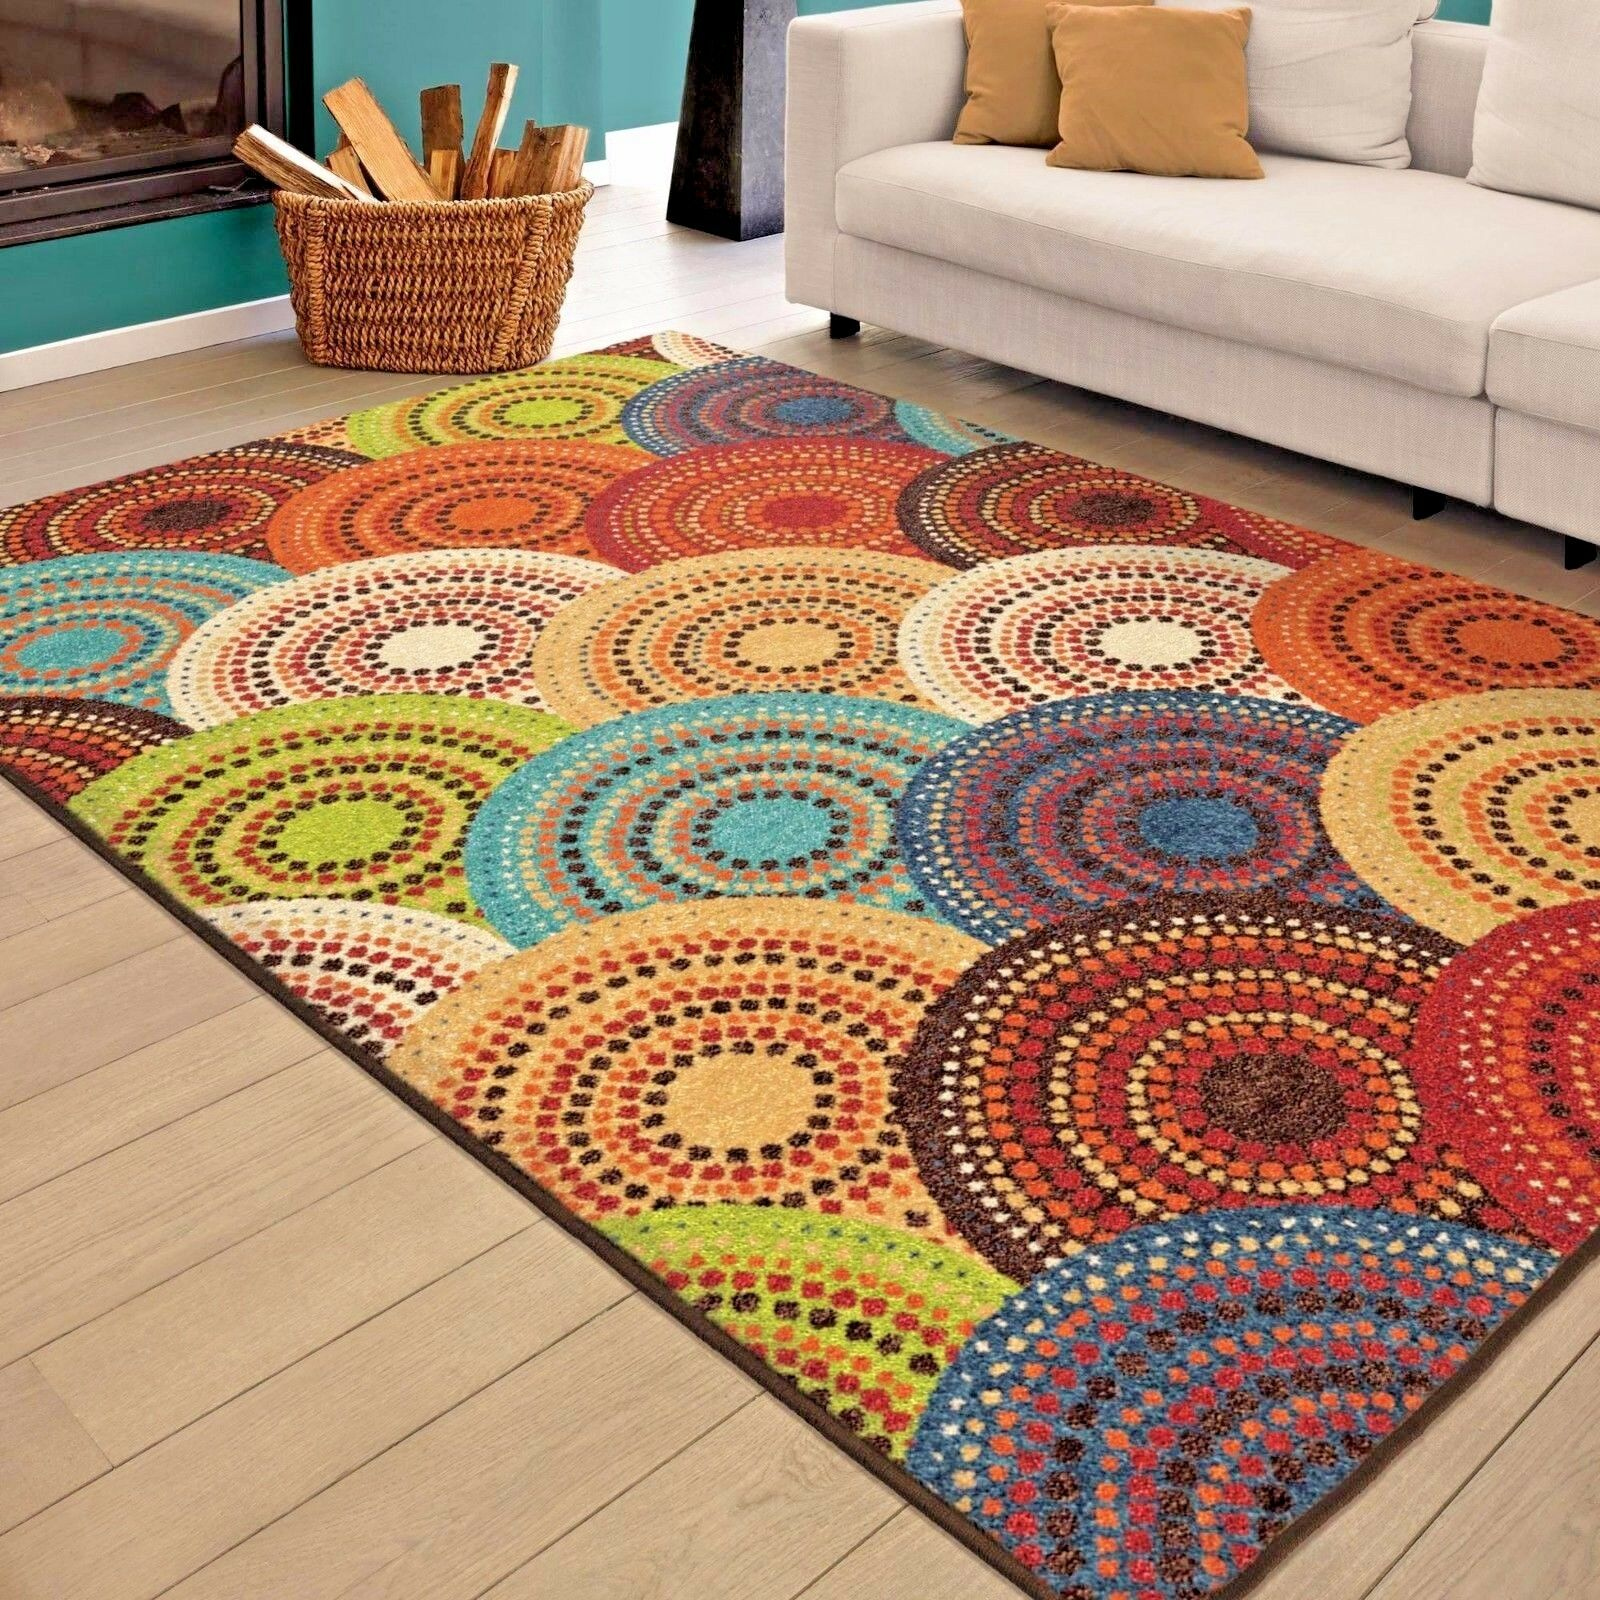 Rugs Area Rugs Carpets 8x10 Rug Floor Modern Cute Colorful